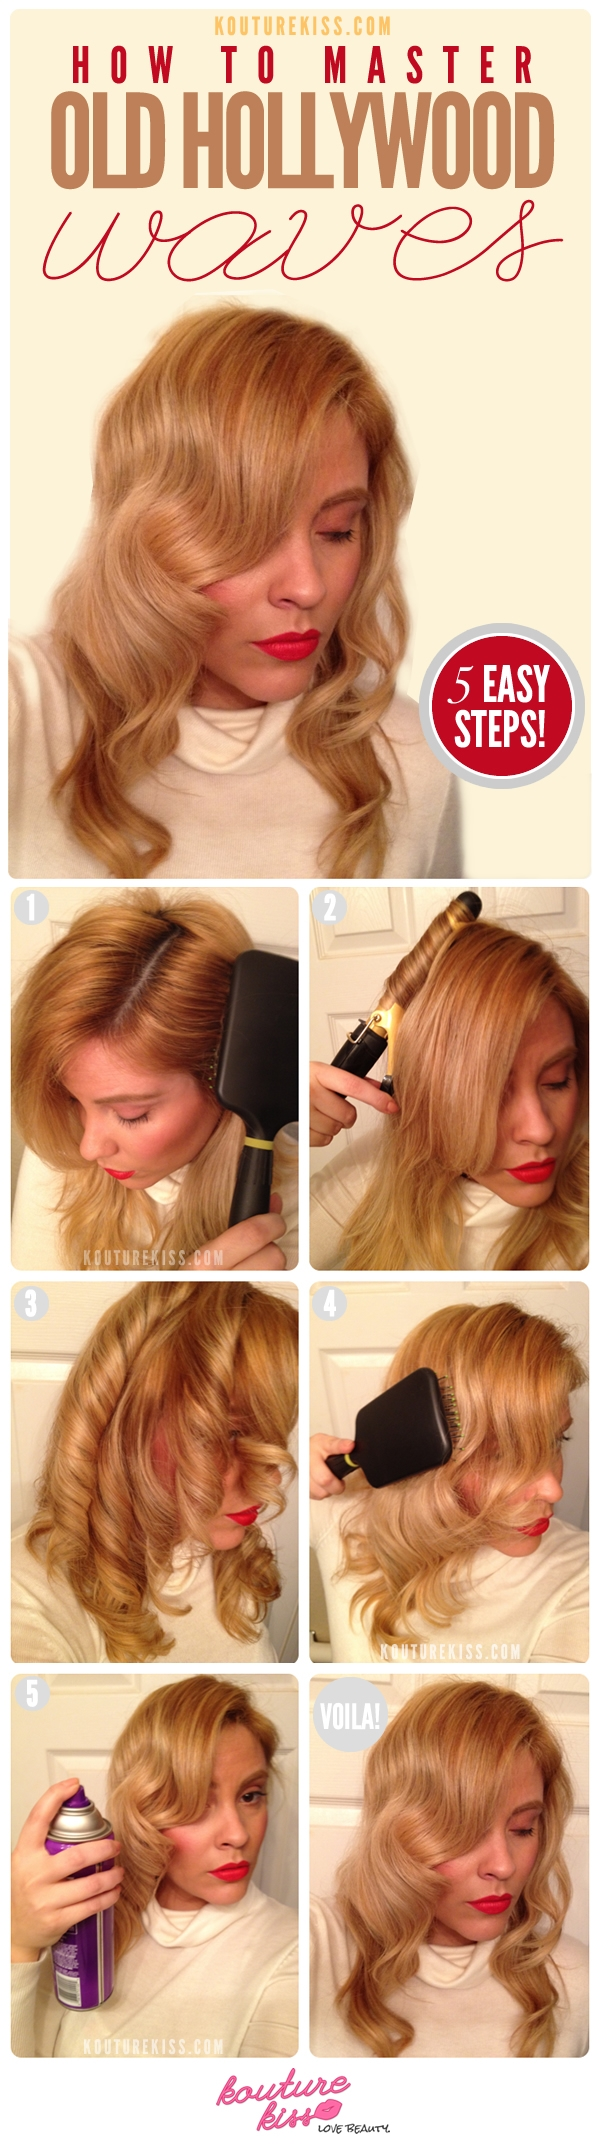 Diy old hollywood waves hairstyle diy old hollywood waves hairstyle diy old hollywood waves hairstyle diy old hollywood waves hairstyle by diyforever solutioingenieria Images